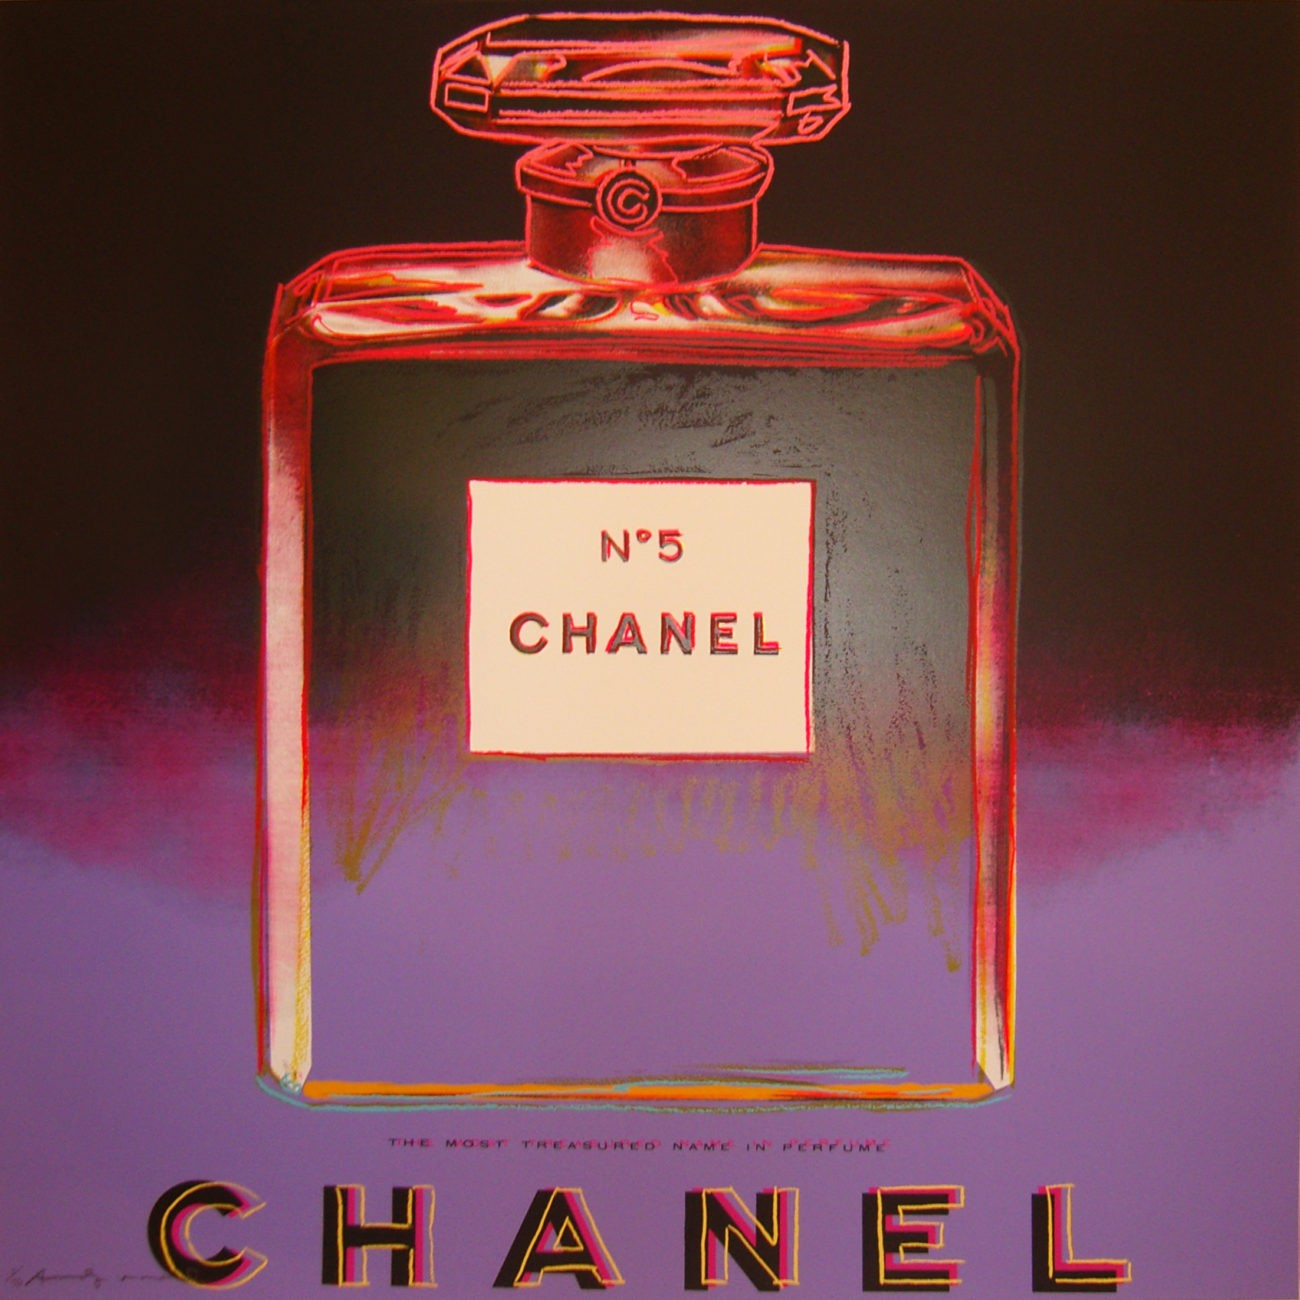 Andy Warhol | Ads | Chanel 354 | 1985 | Image of Artists' work.